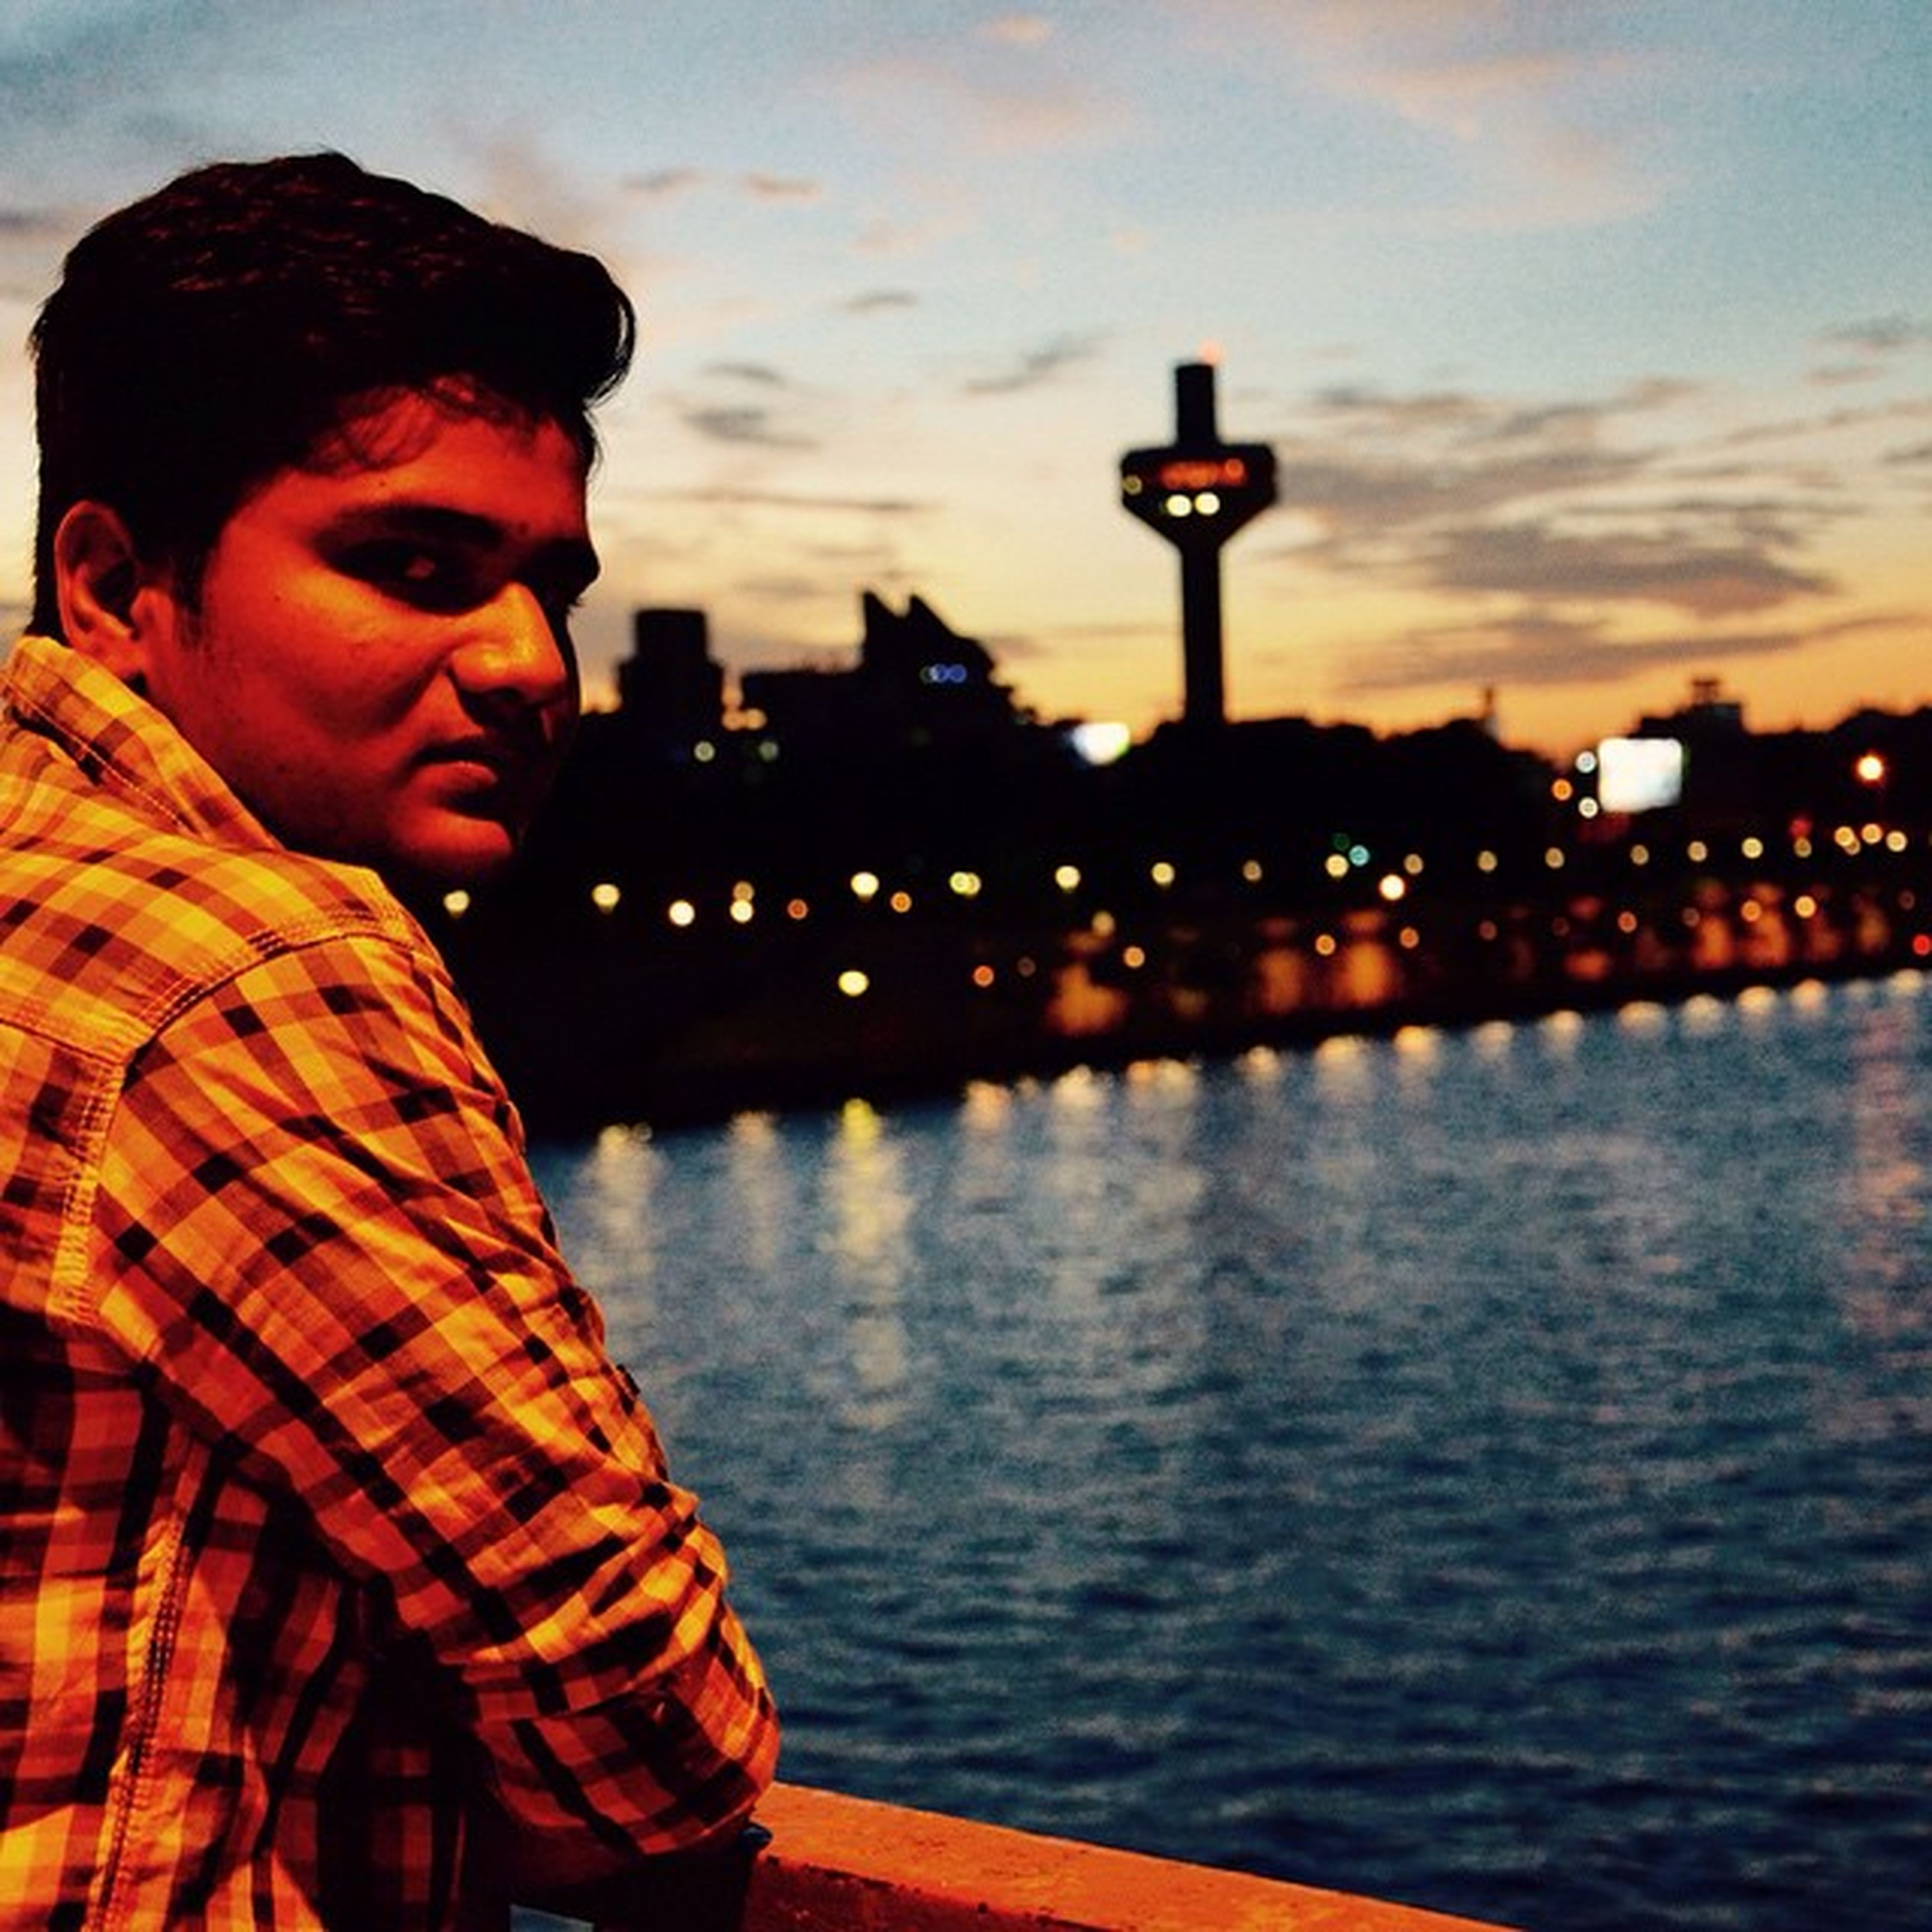 lifestyles, building exterior, water, architecture, person, built structure, leisure activity, headshot, young adult, river, sky, standing, city, looking at camera, casual clothing, waist up, portrait, young men